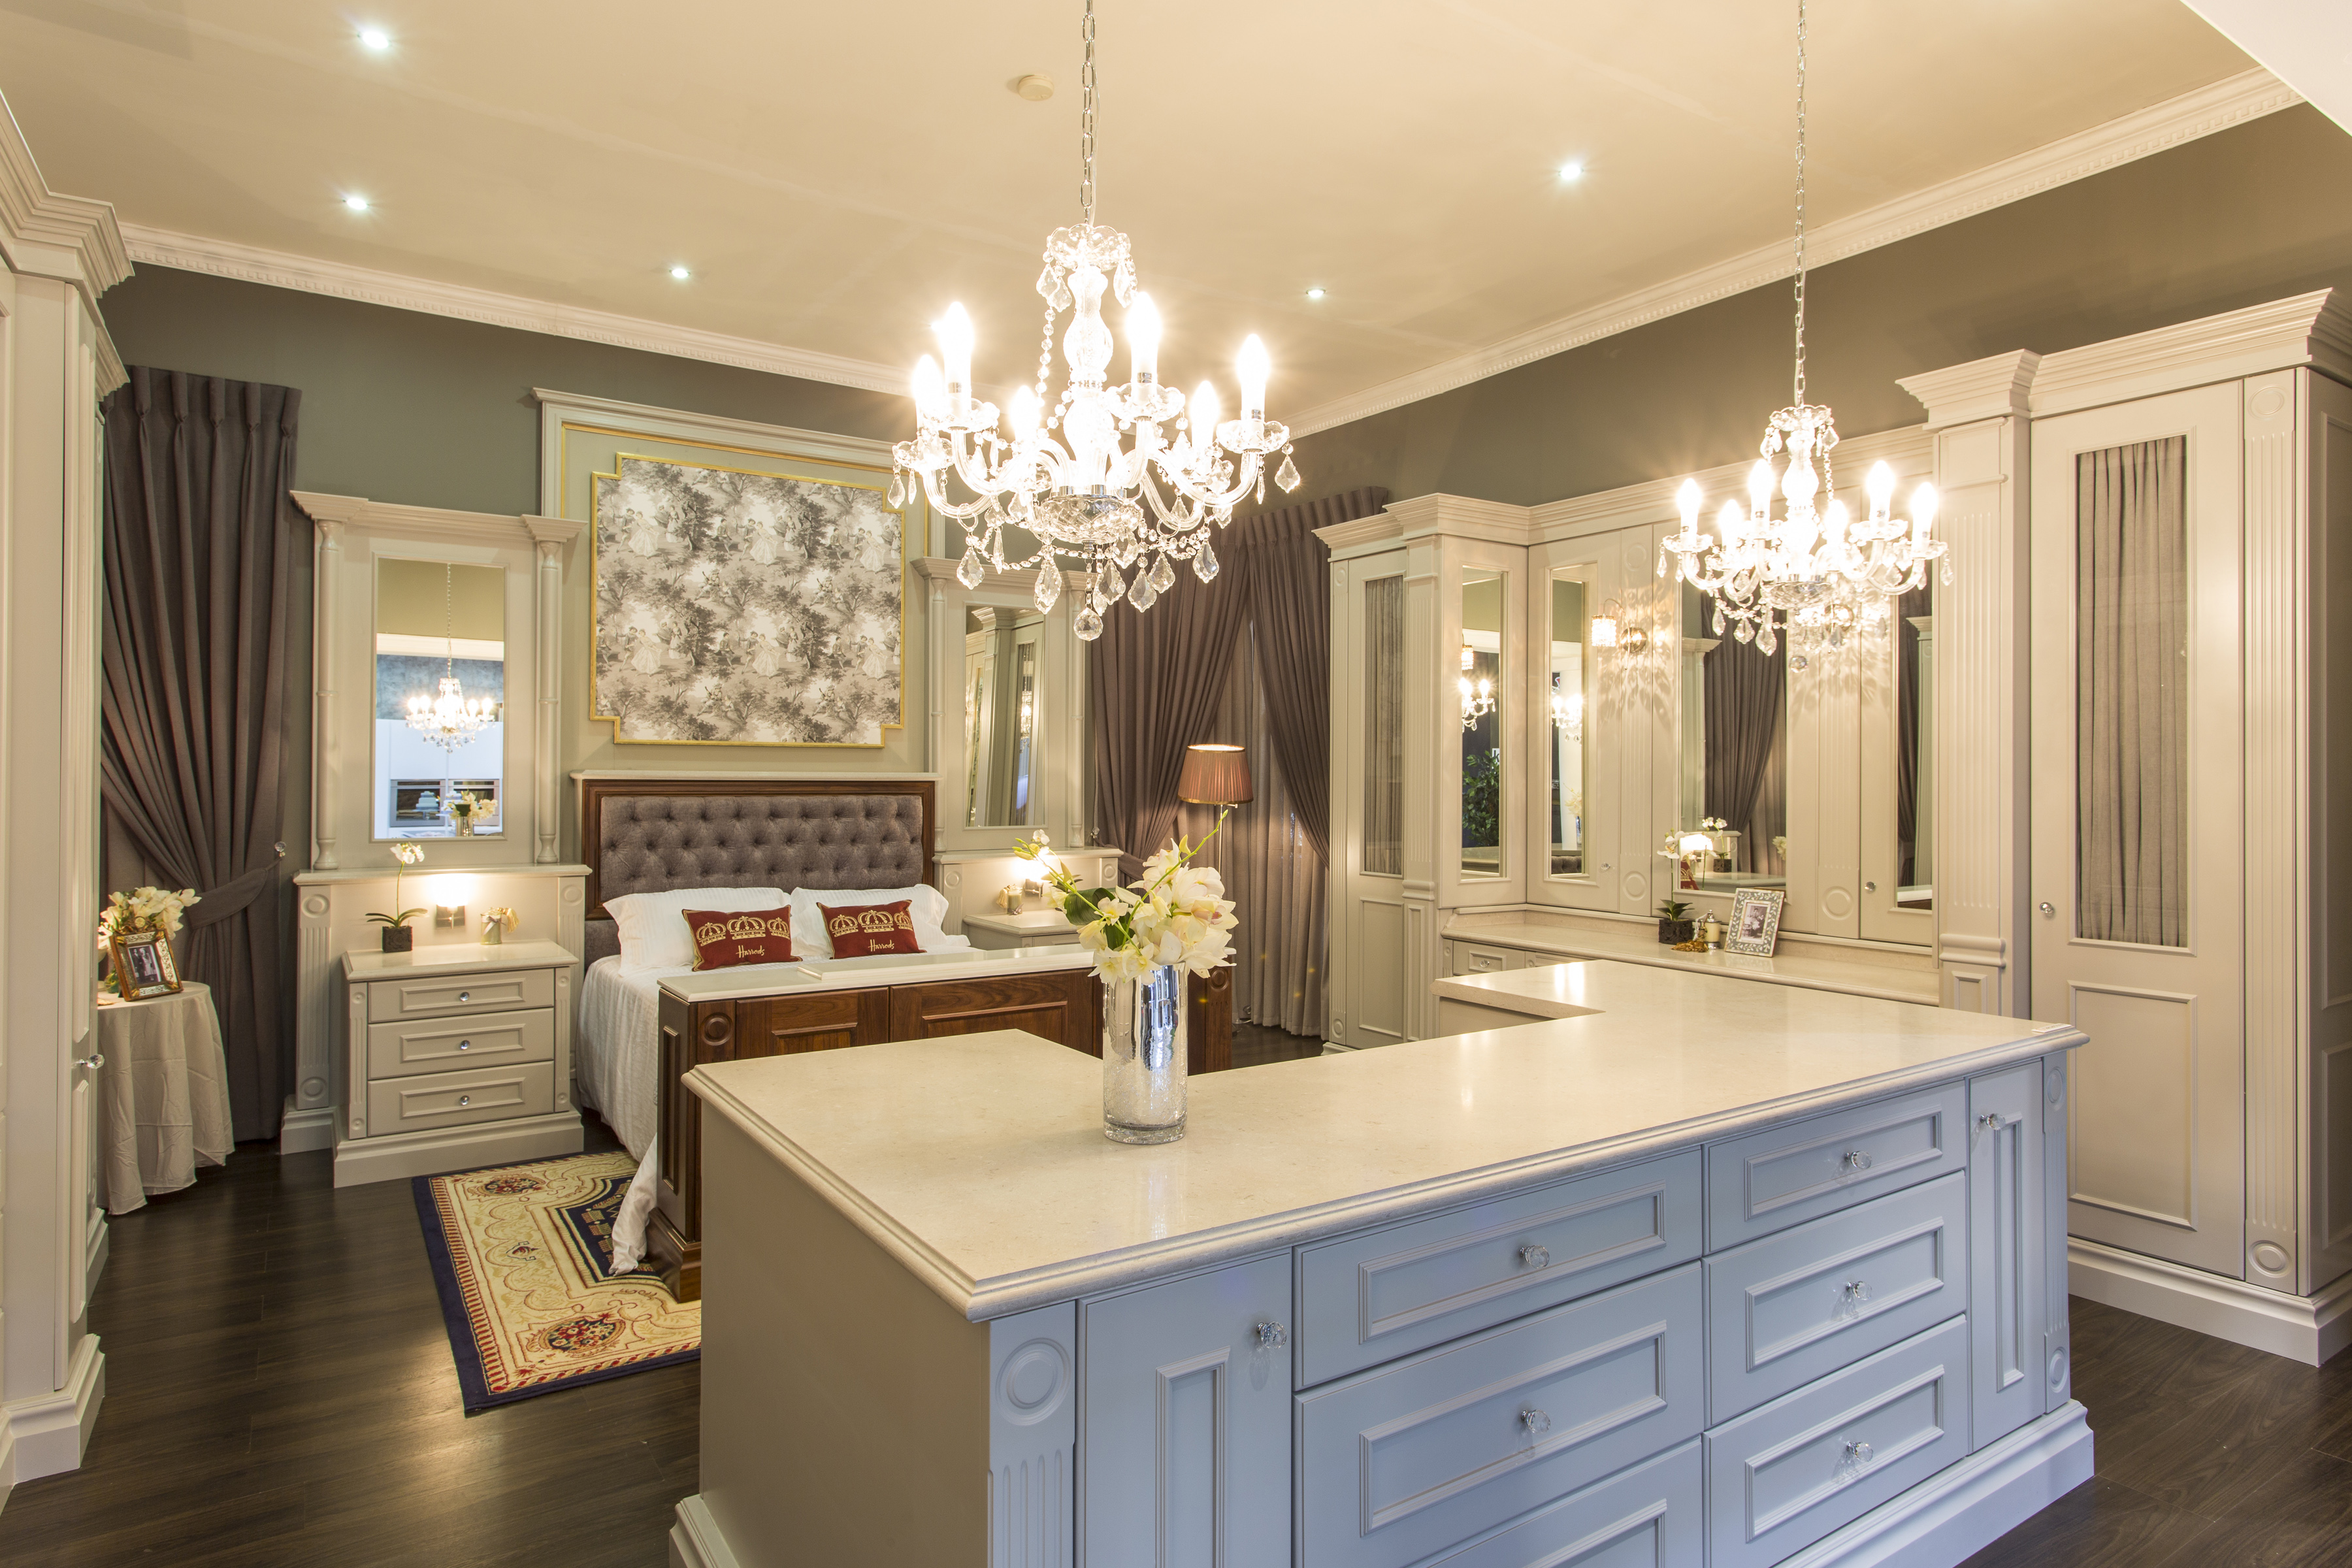 Kitchen cabinets the kitchen studio south africa - Kitchen designs south africa prices ...